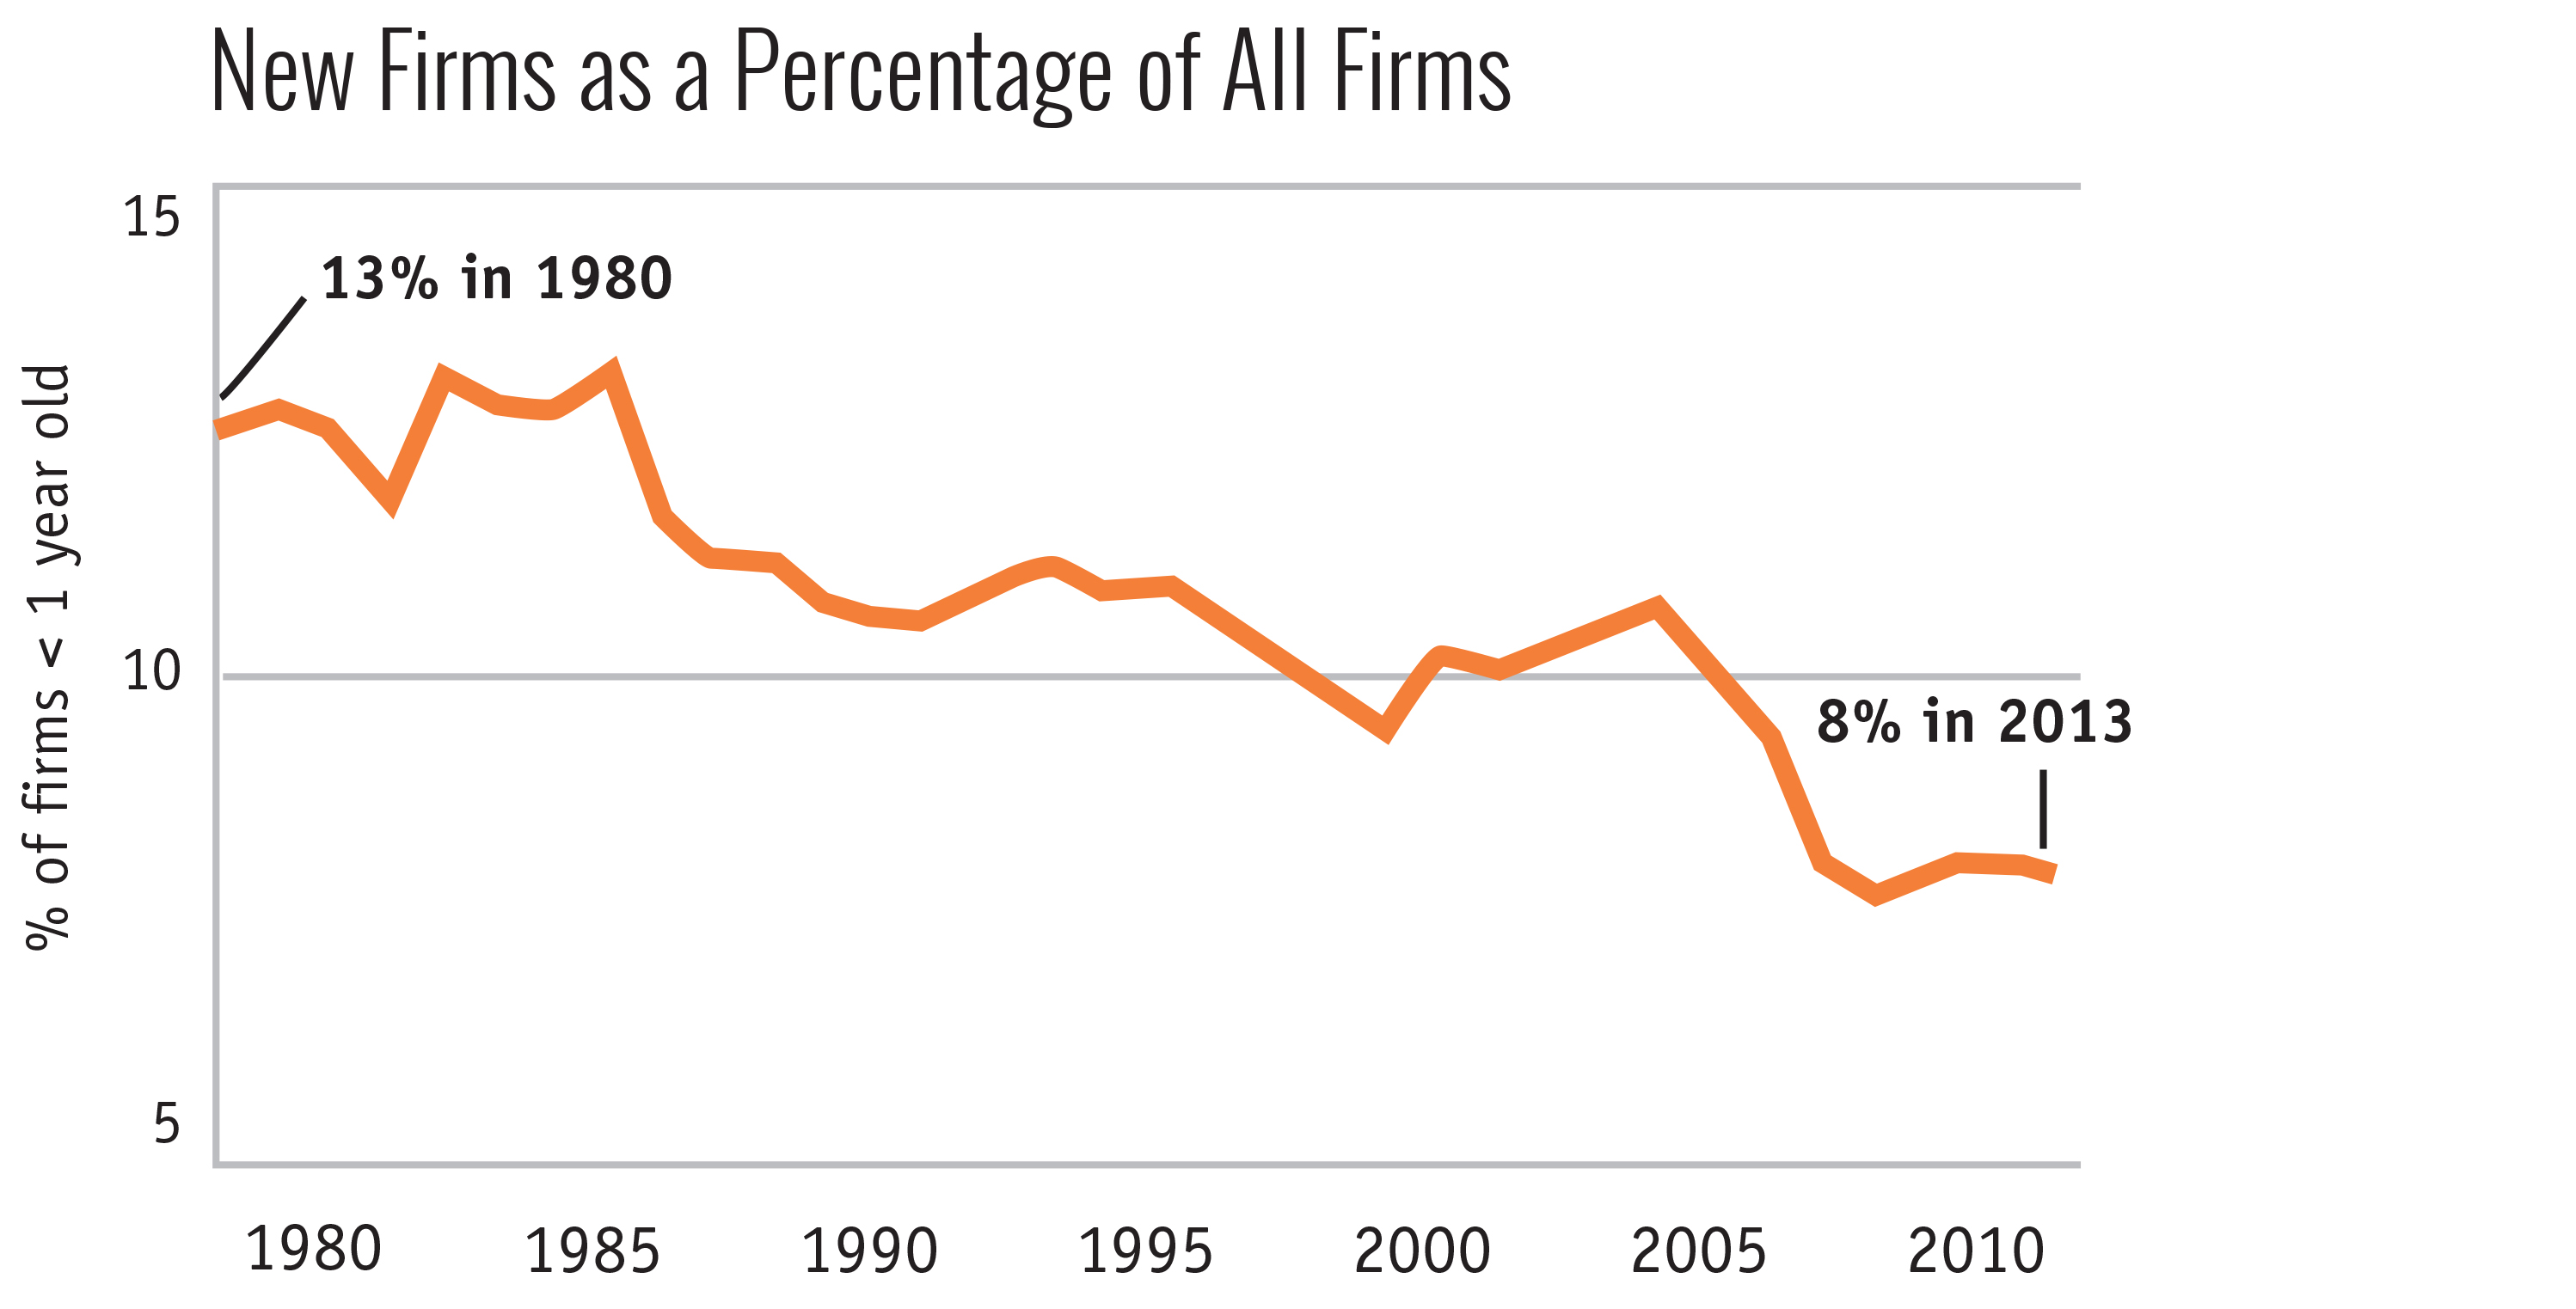 New Firms as a Percentage of All Firms